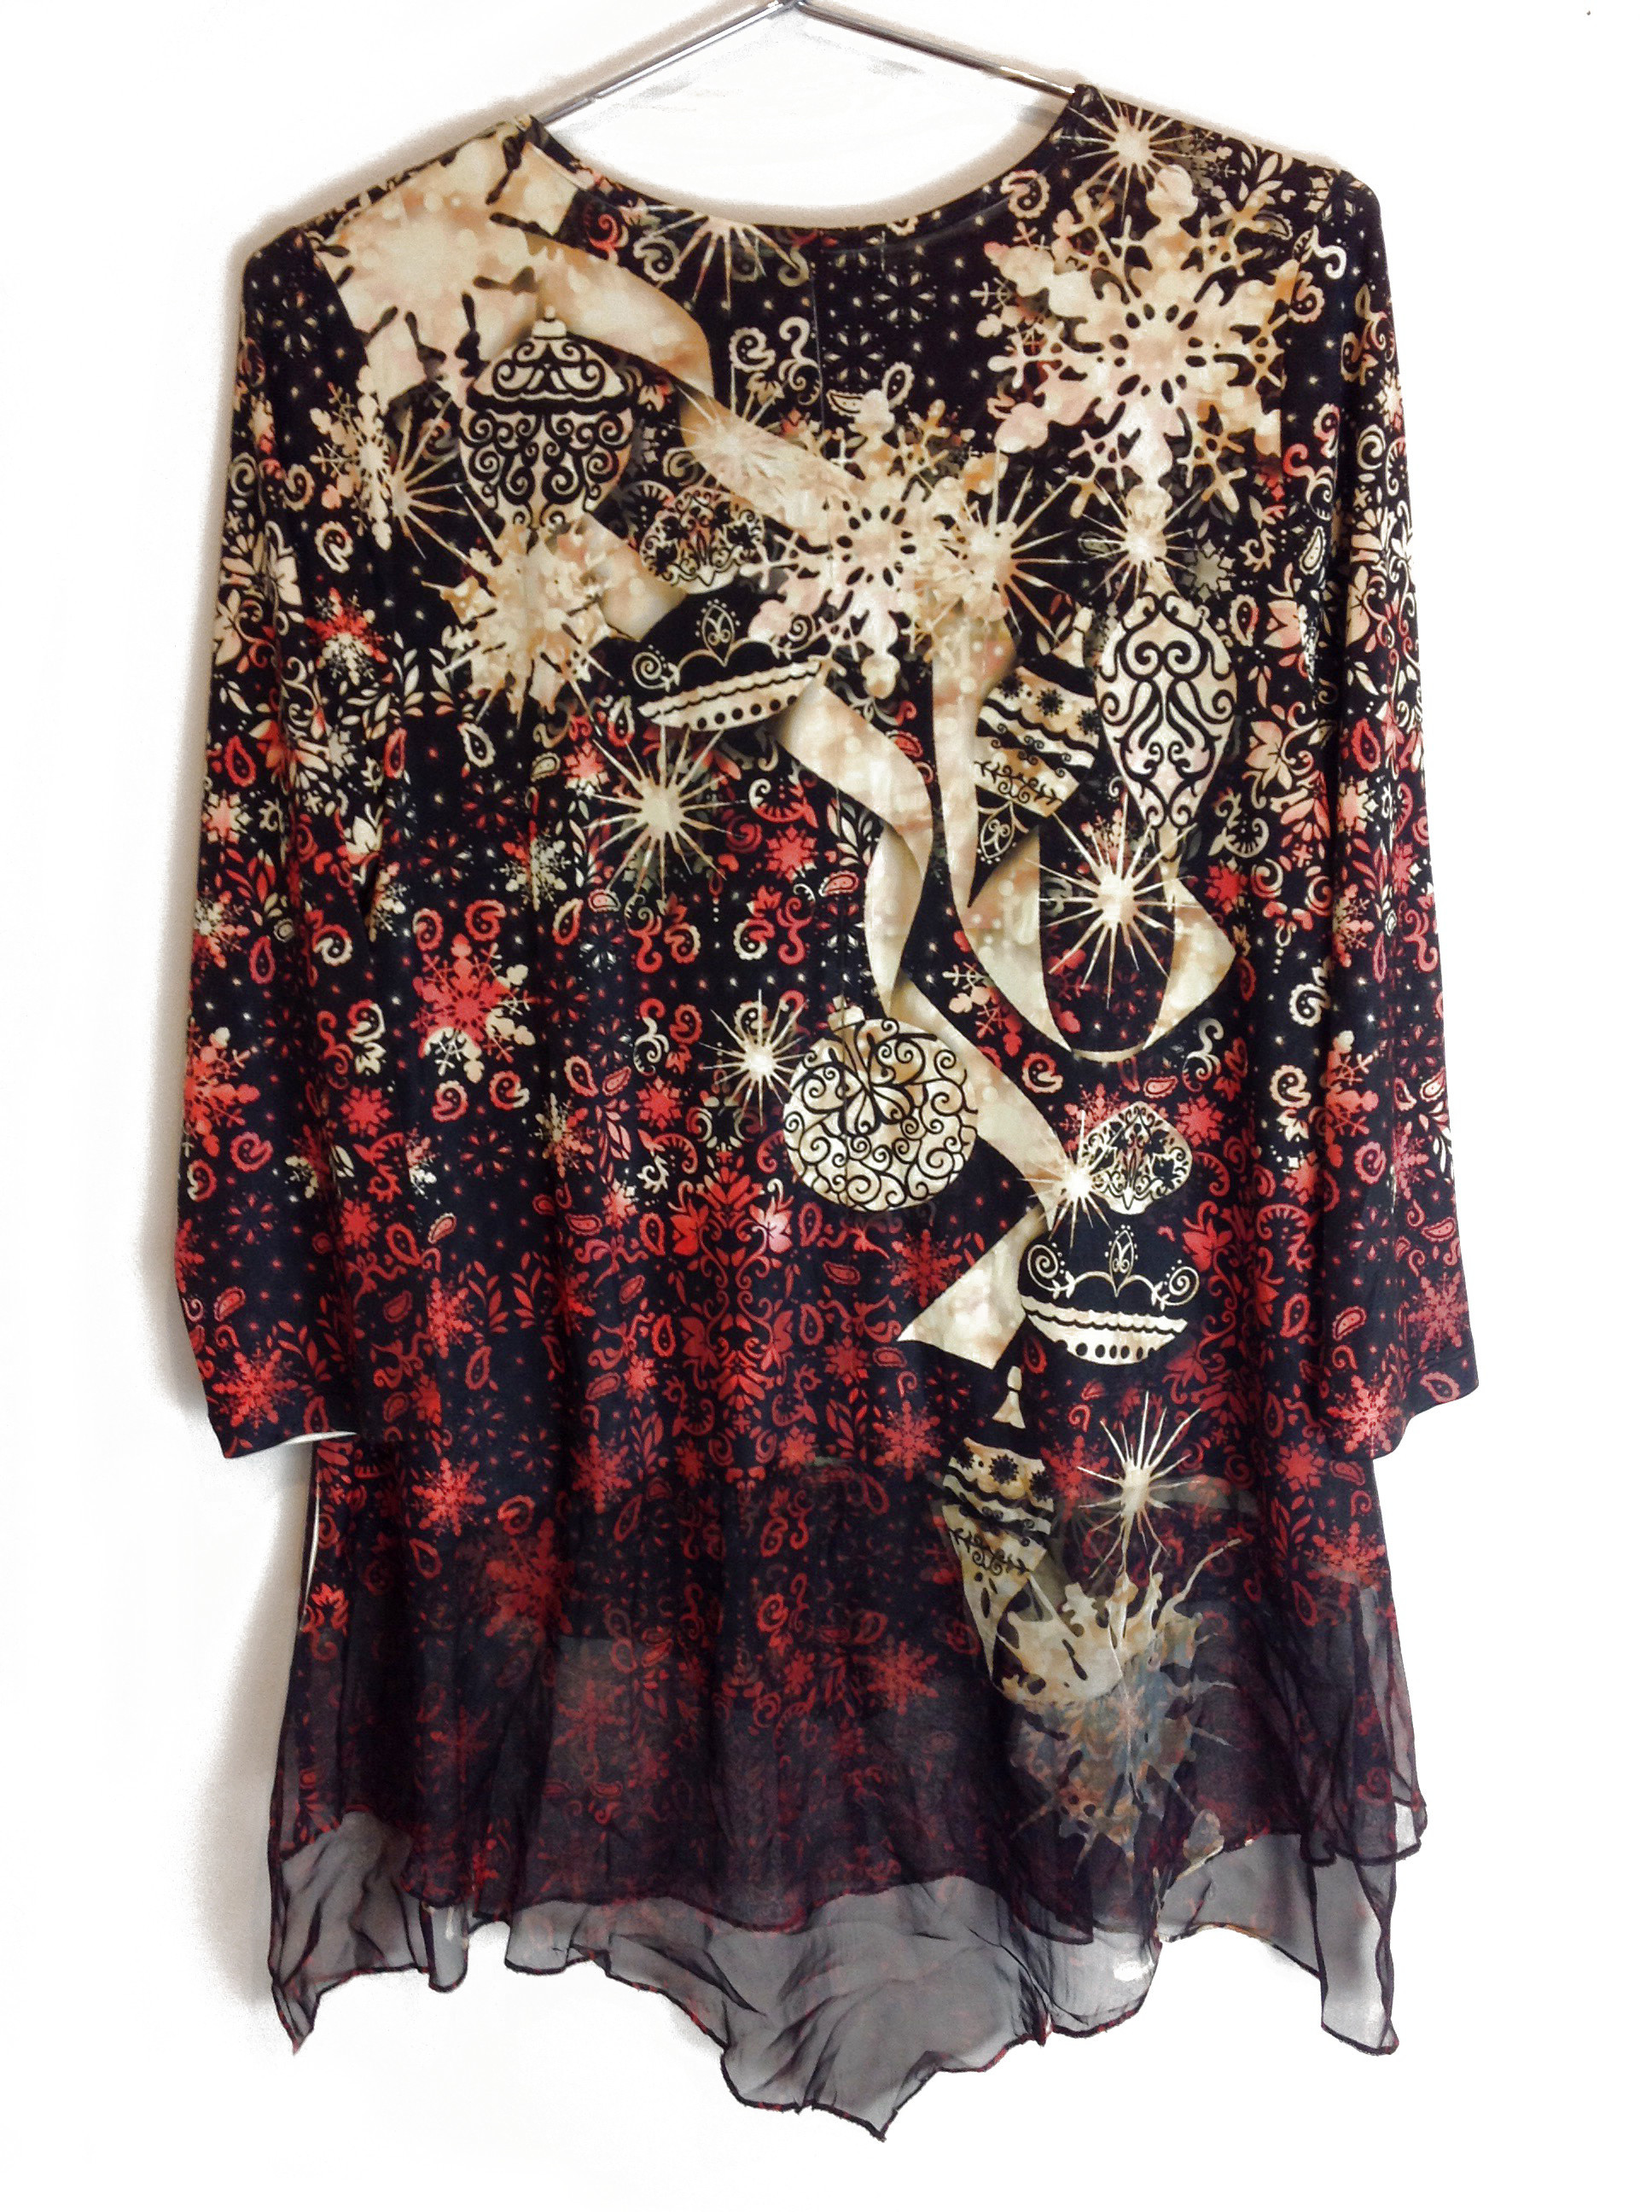 New-One-World-Womens-3-4-Sleeve-Printed-Blouse-Sequence-Tunic-Top-Plus-Size-45 thumbnail 3